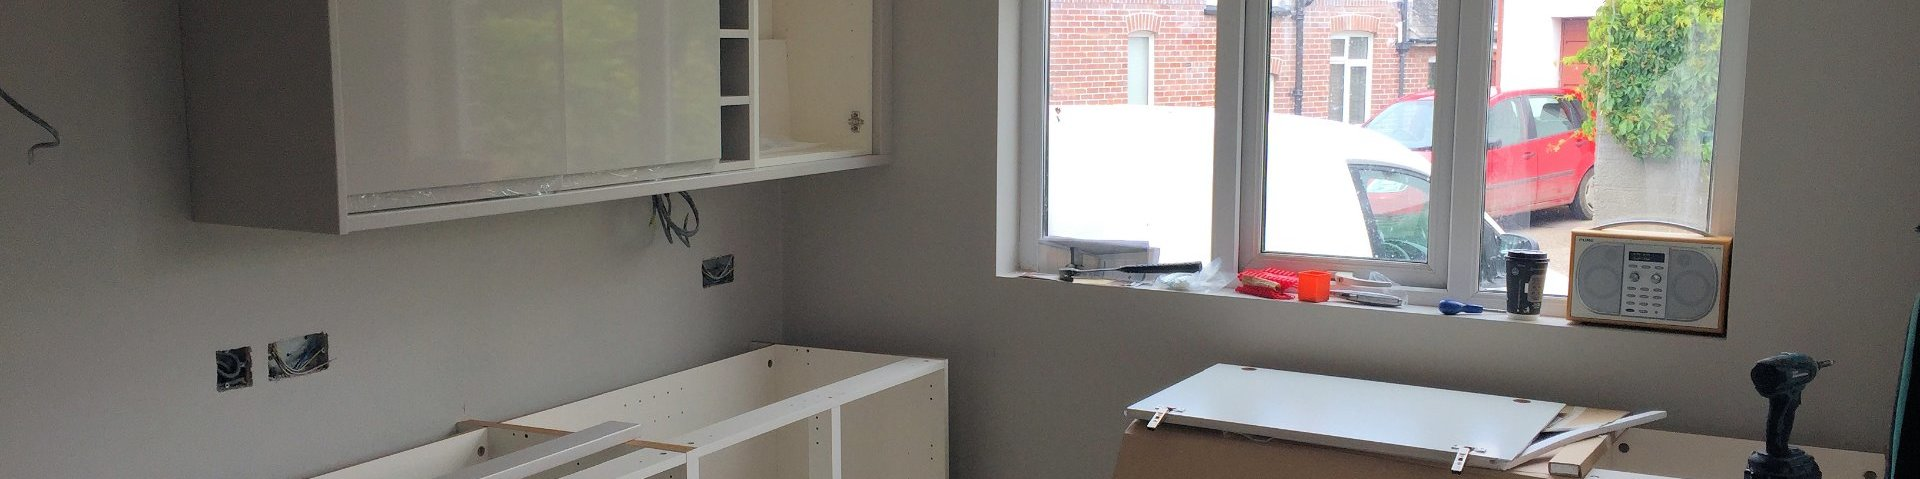 Kitchen Installations in Barnstaple Devon